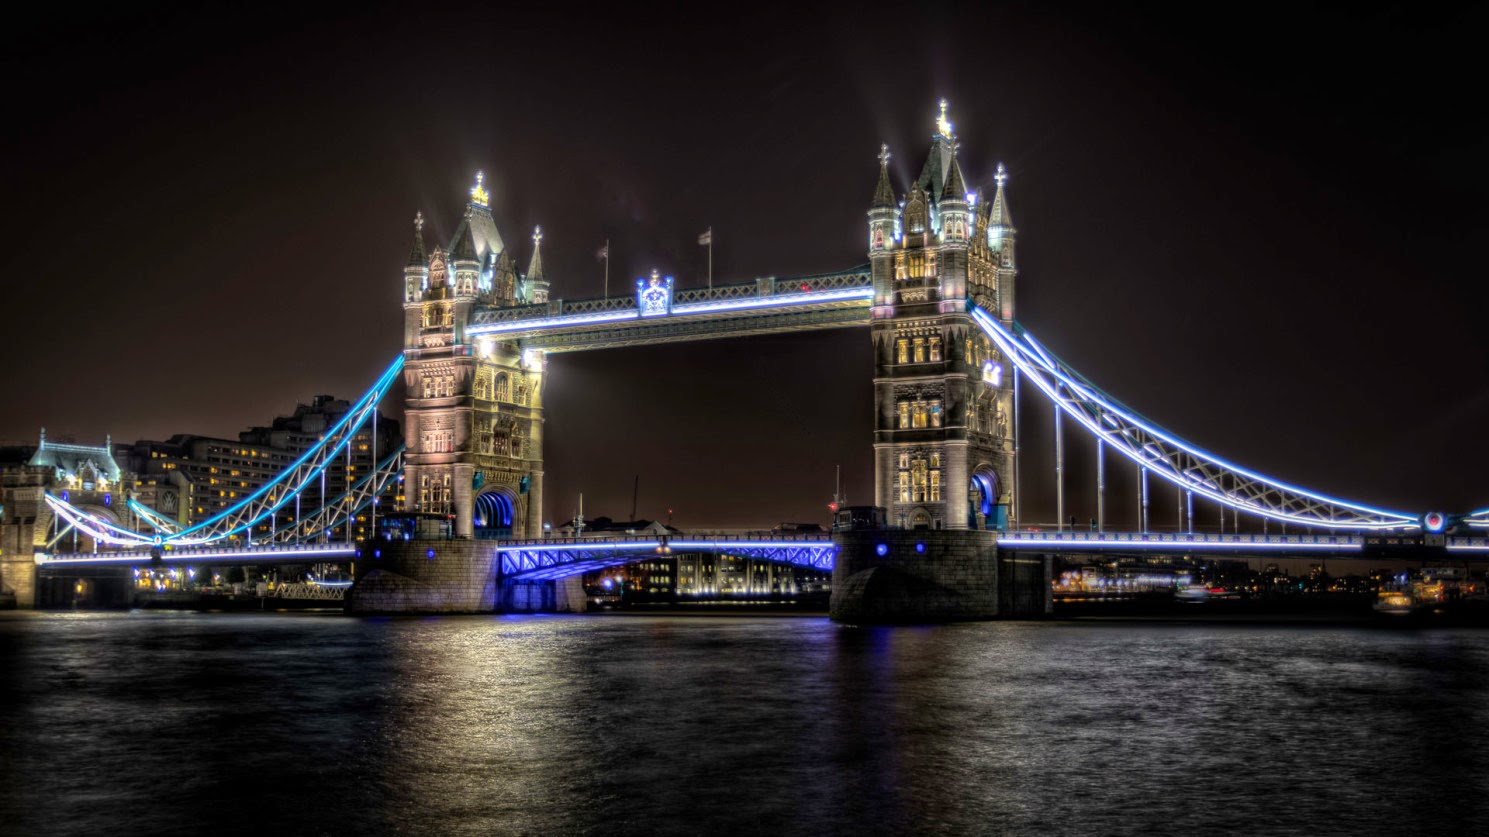 Alistair Cunningham, fotografía HDR, Tower Bridge, Londres